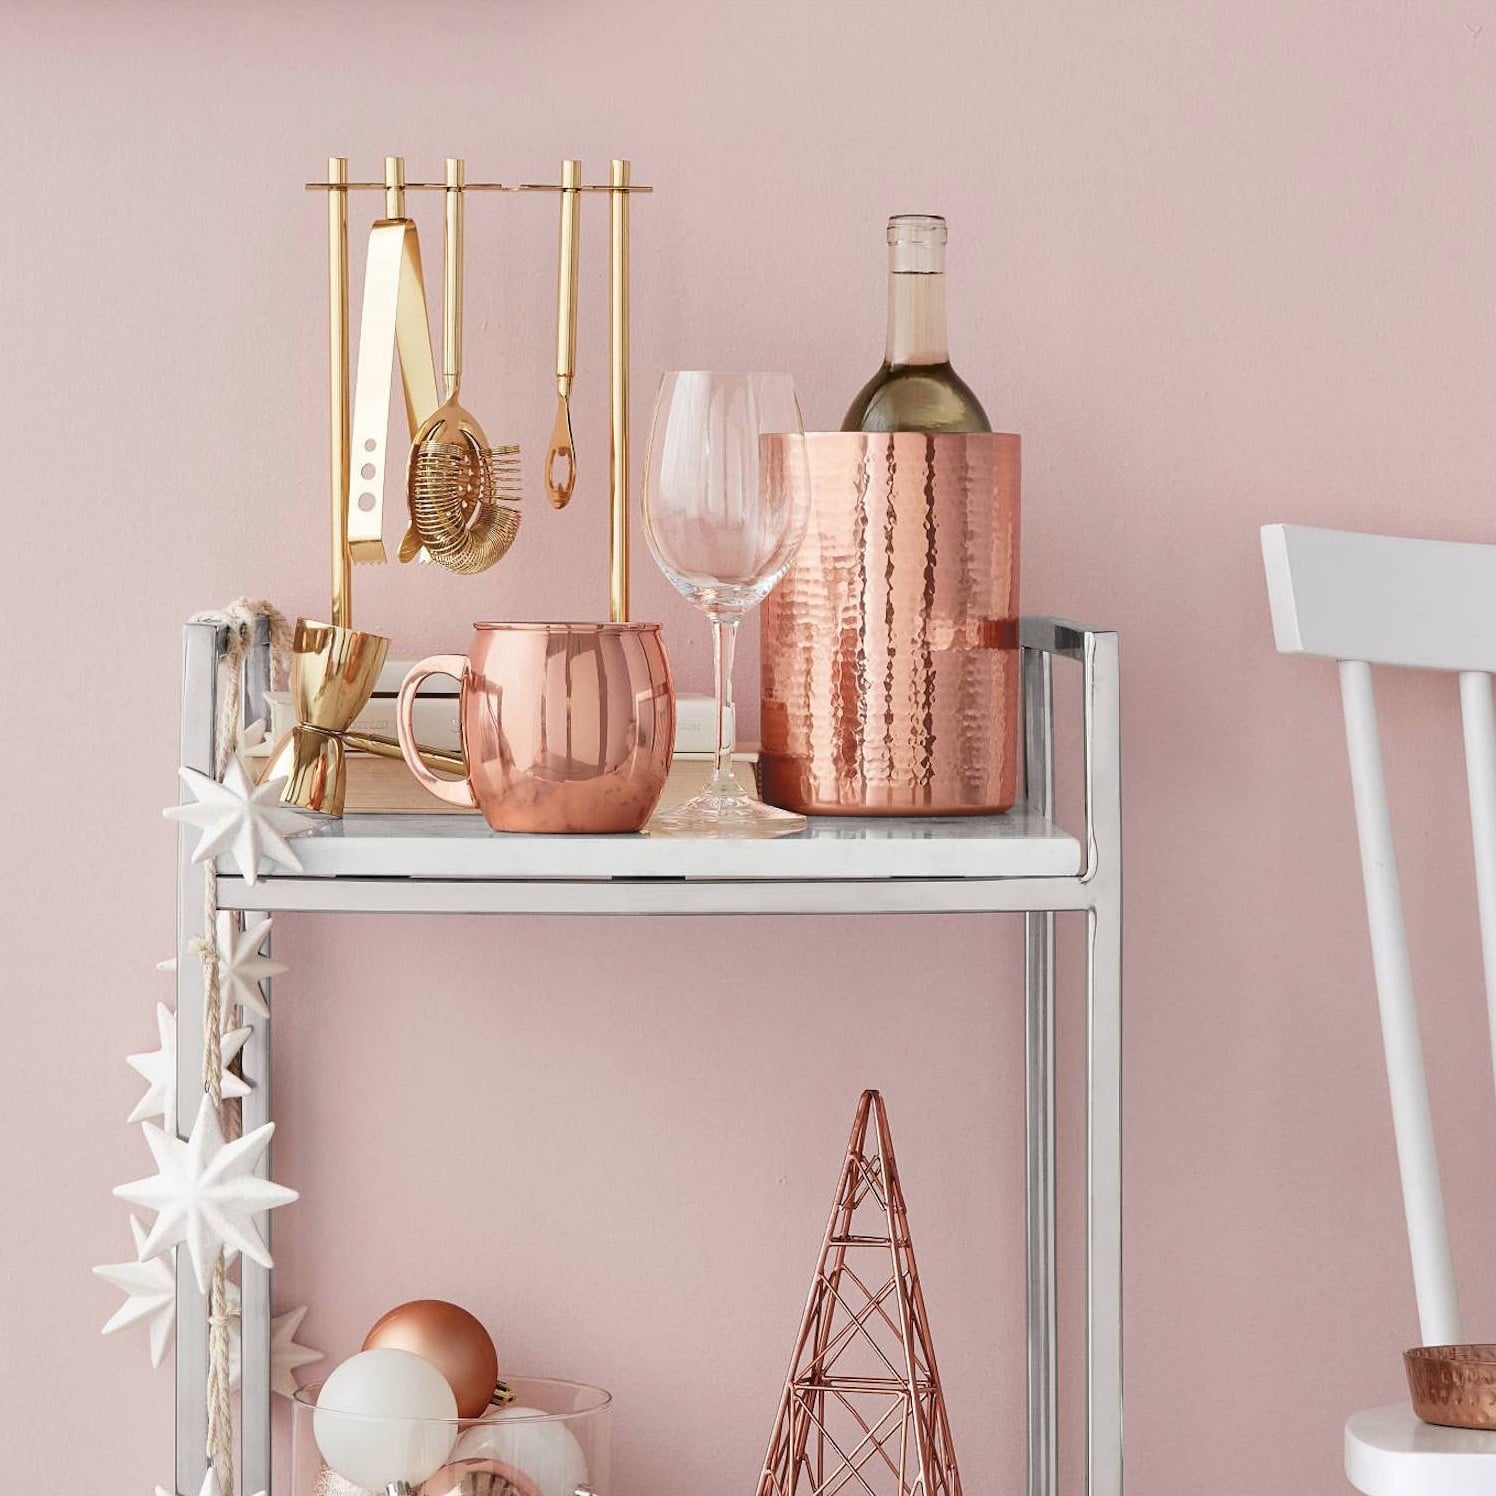 Cool gifts from target popsugar smart living negle Images